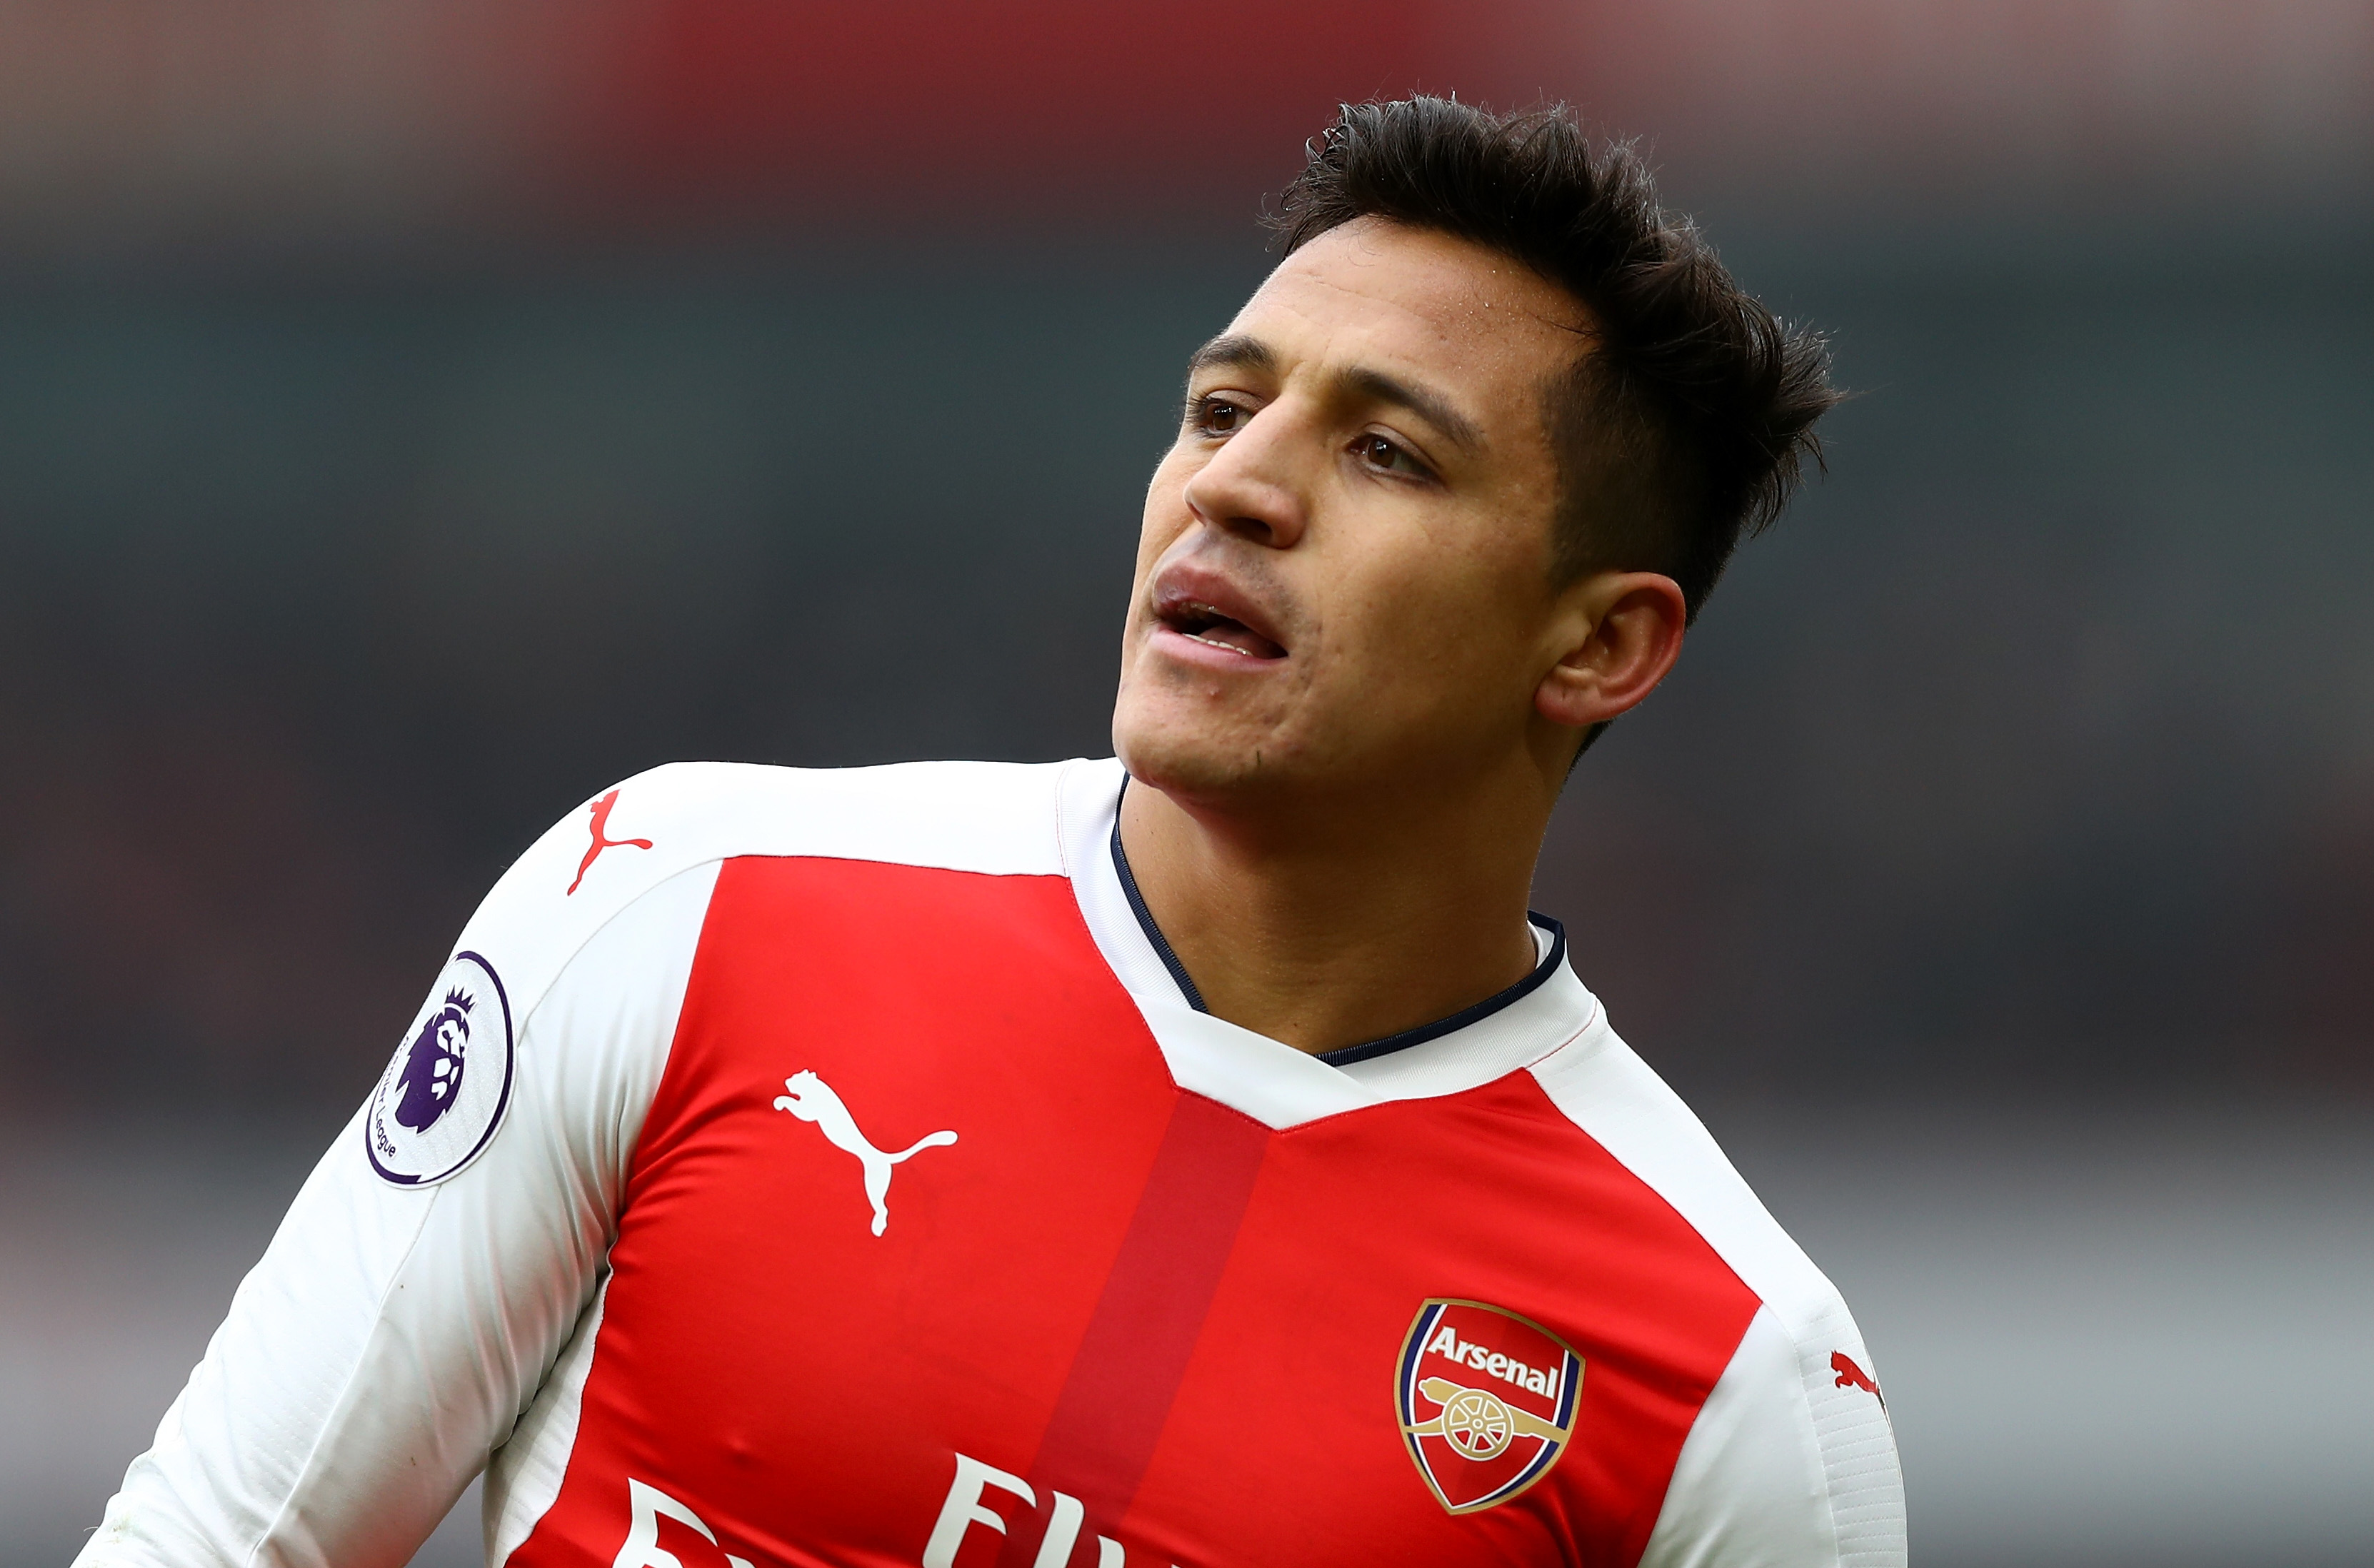 LONDON, ENGLAND - FEBRUARY 11: Alexis Sanchez of Arsenal looks on during the Premier League match between Arsenal and Hull City at Emirates Stadium on February 11, 2017 in London, England. (Photo by Clive Rose/Getty Images)